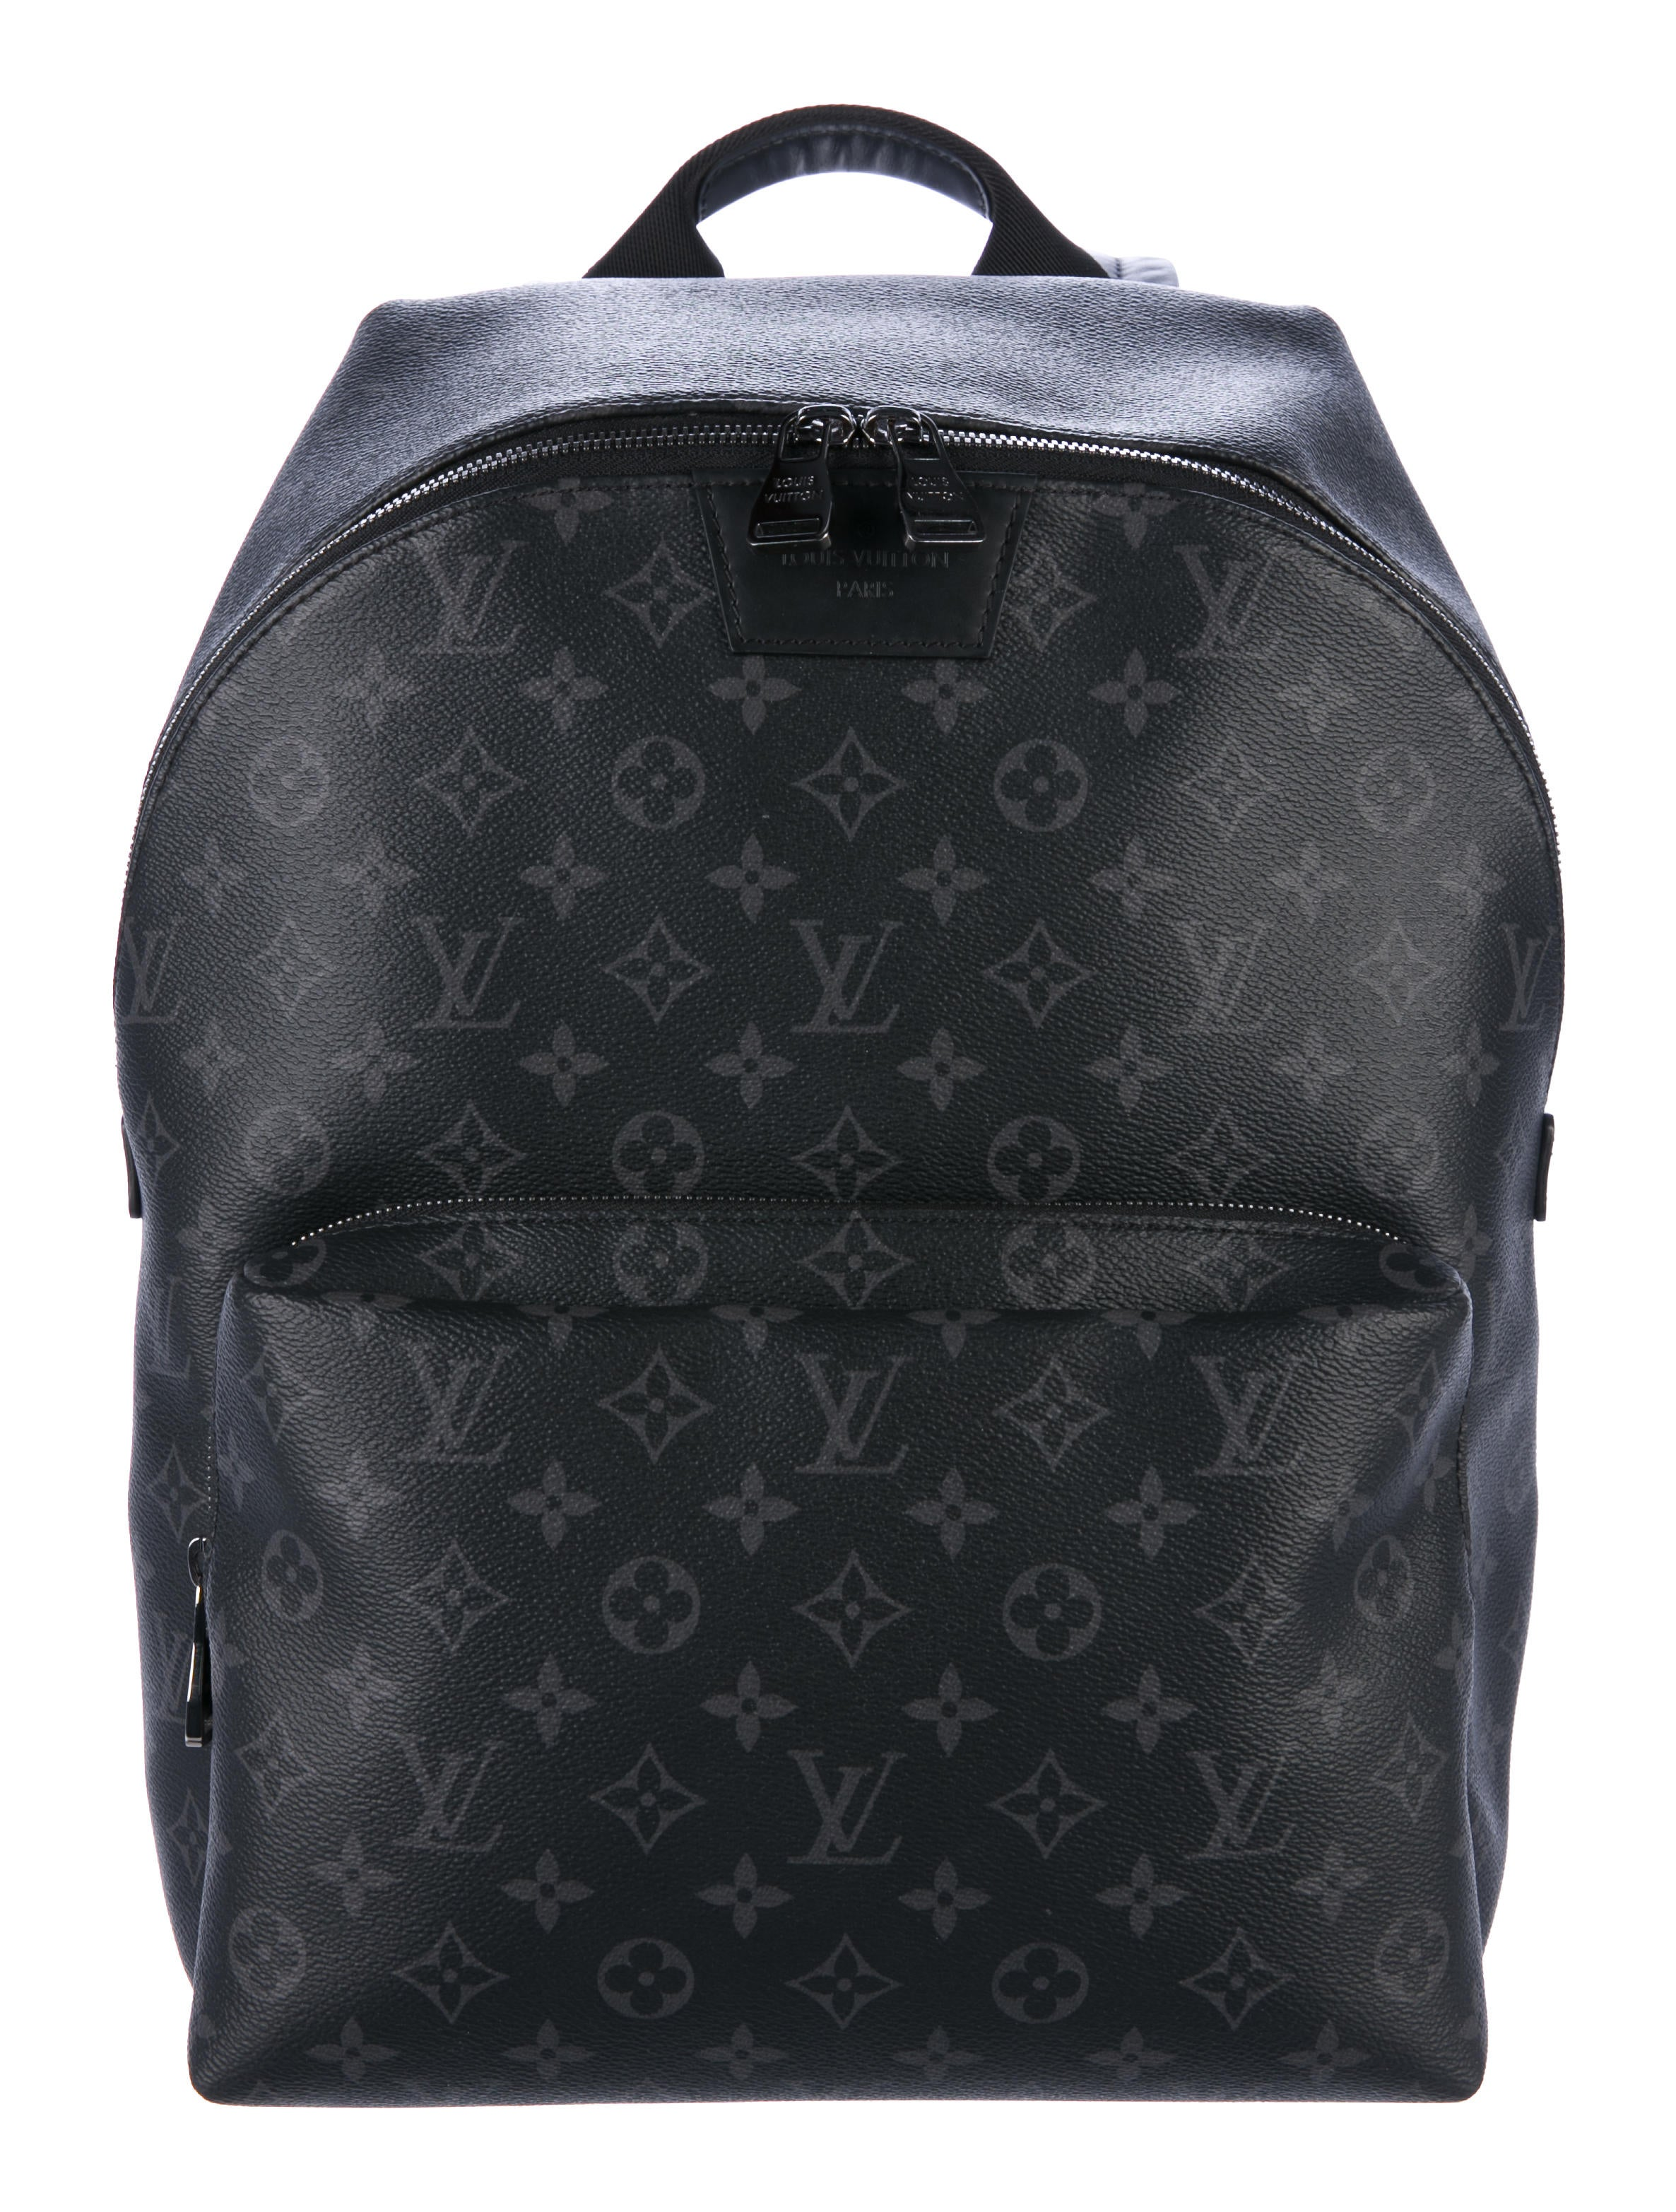 31c484a1072d Louis Vuitton 2017 Monogram Eclipse Apollo Backpack - Bags ...